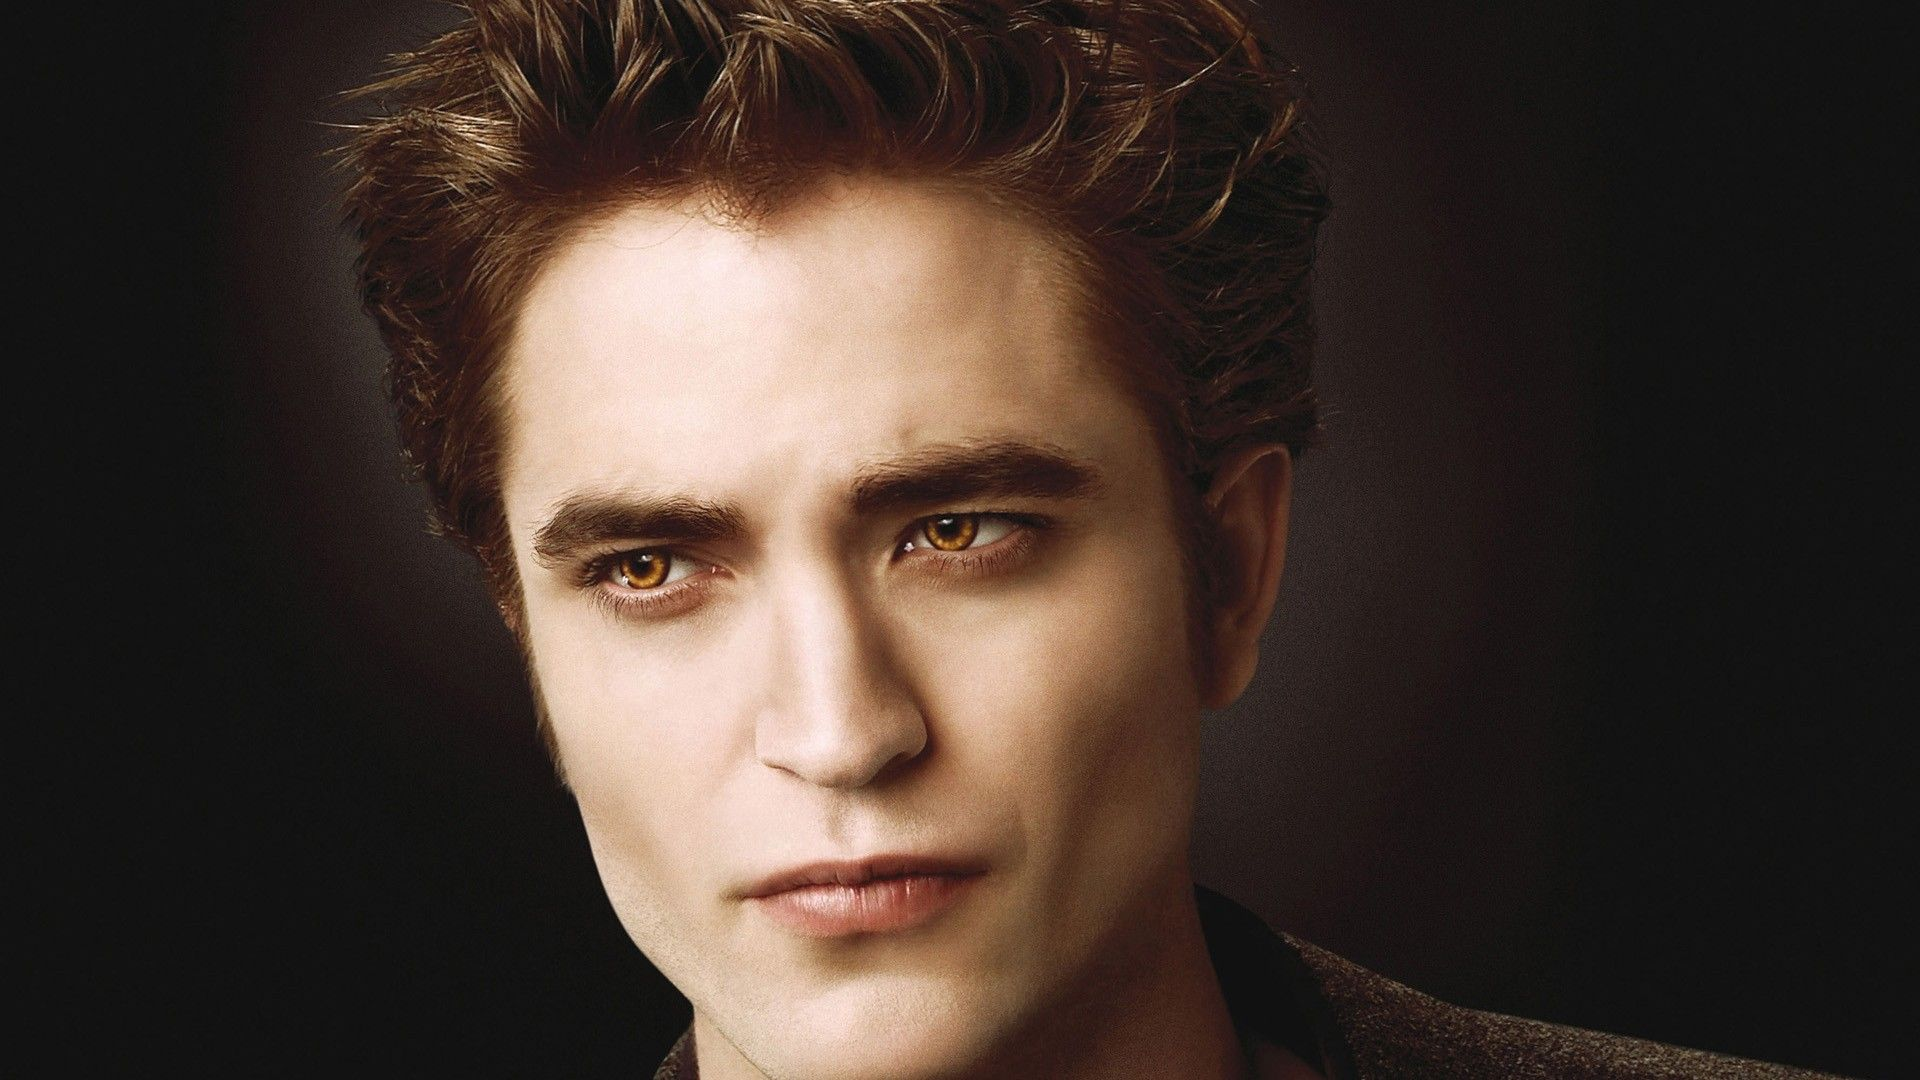 Twilight edward cullen bella swan resimleri robert Twilight edward photos